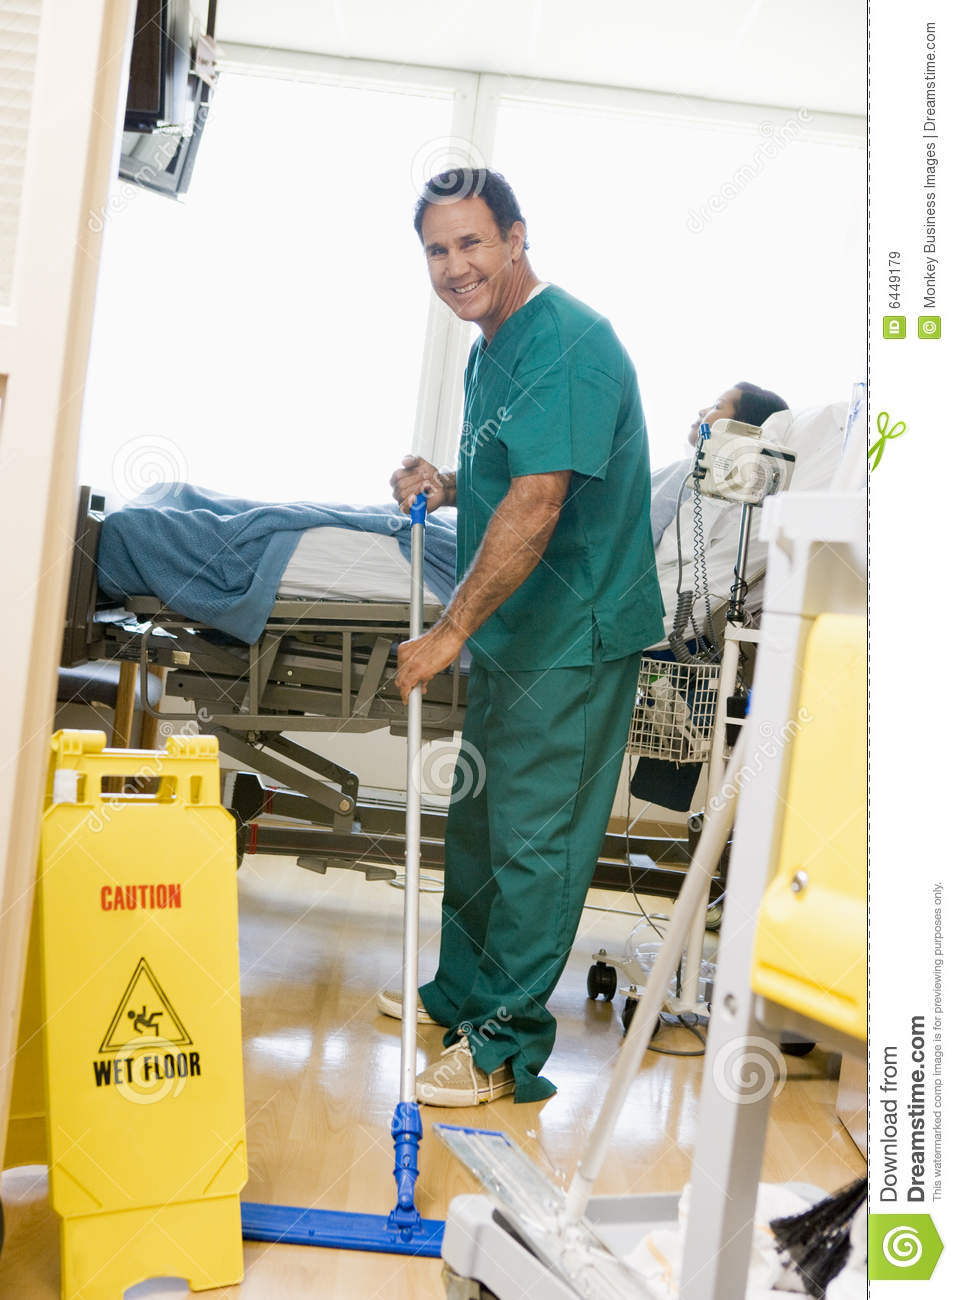 An Orderly Mopping The Floor In A Hospital Stock Image